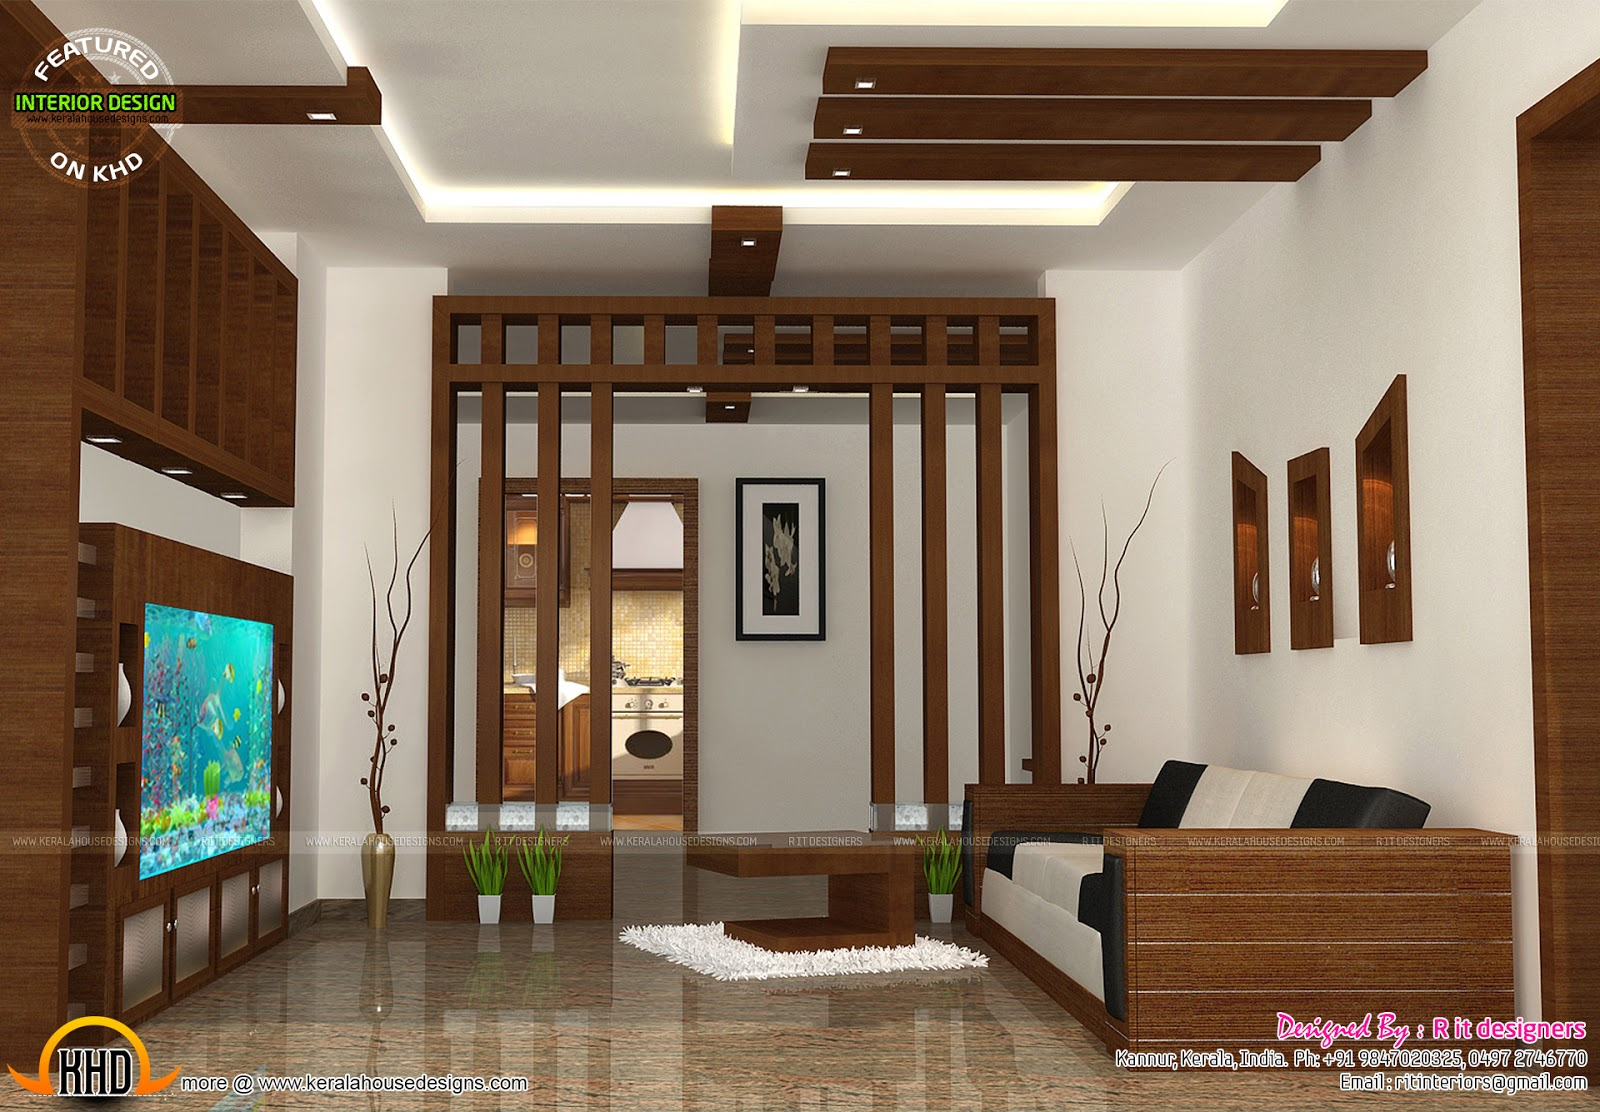 Wooden finish interiors kerala home design and floor plans for Indoor design home